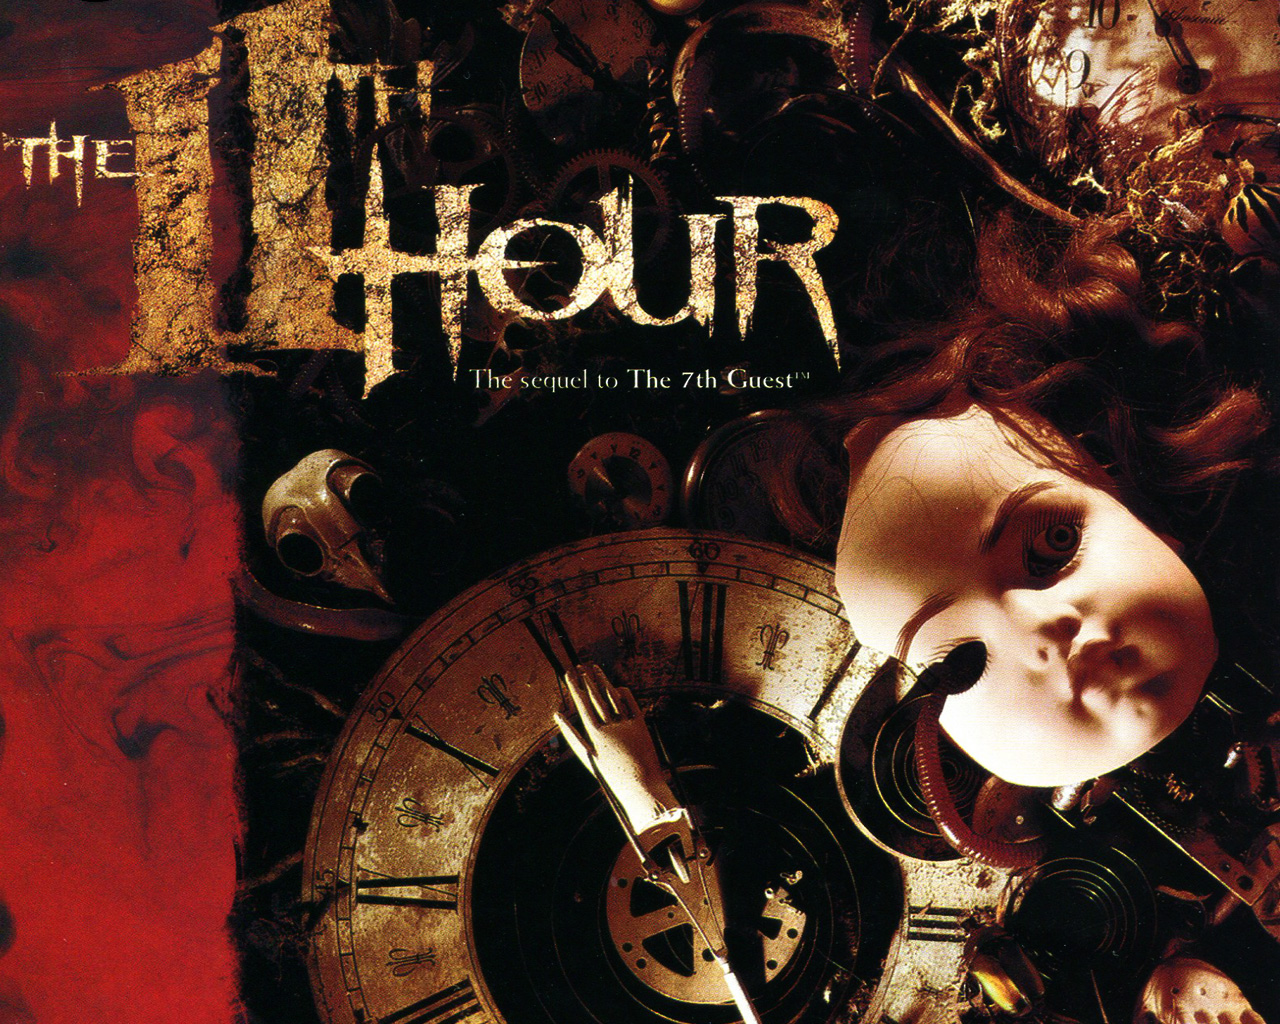 Free The 11th Hour Wallpaper in 1280x1024